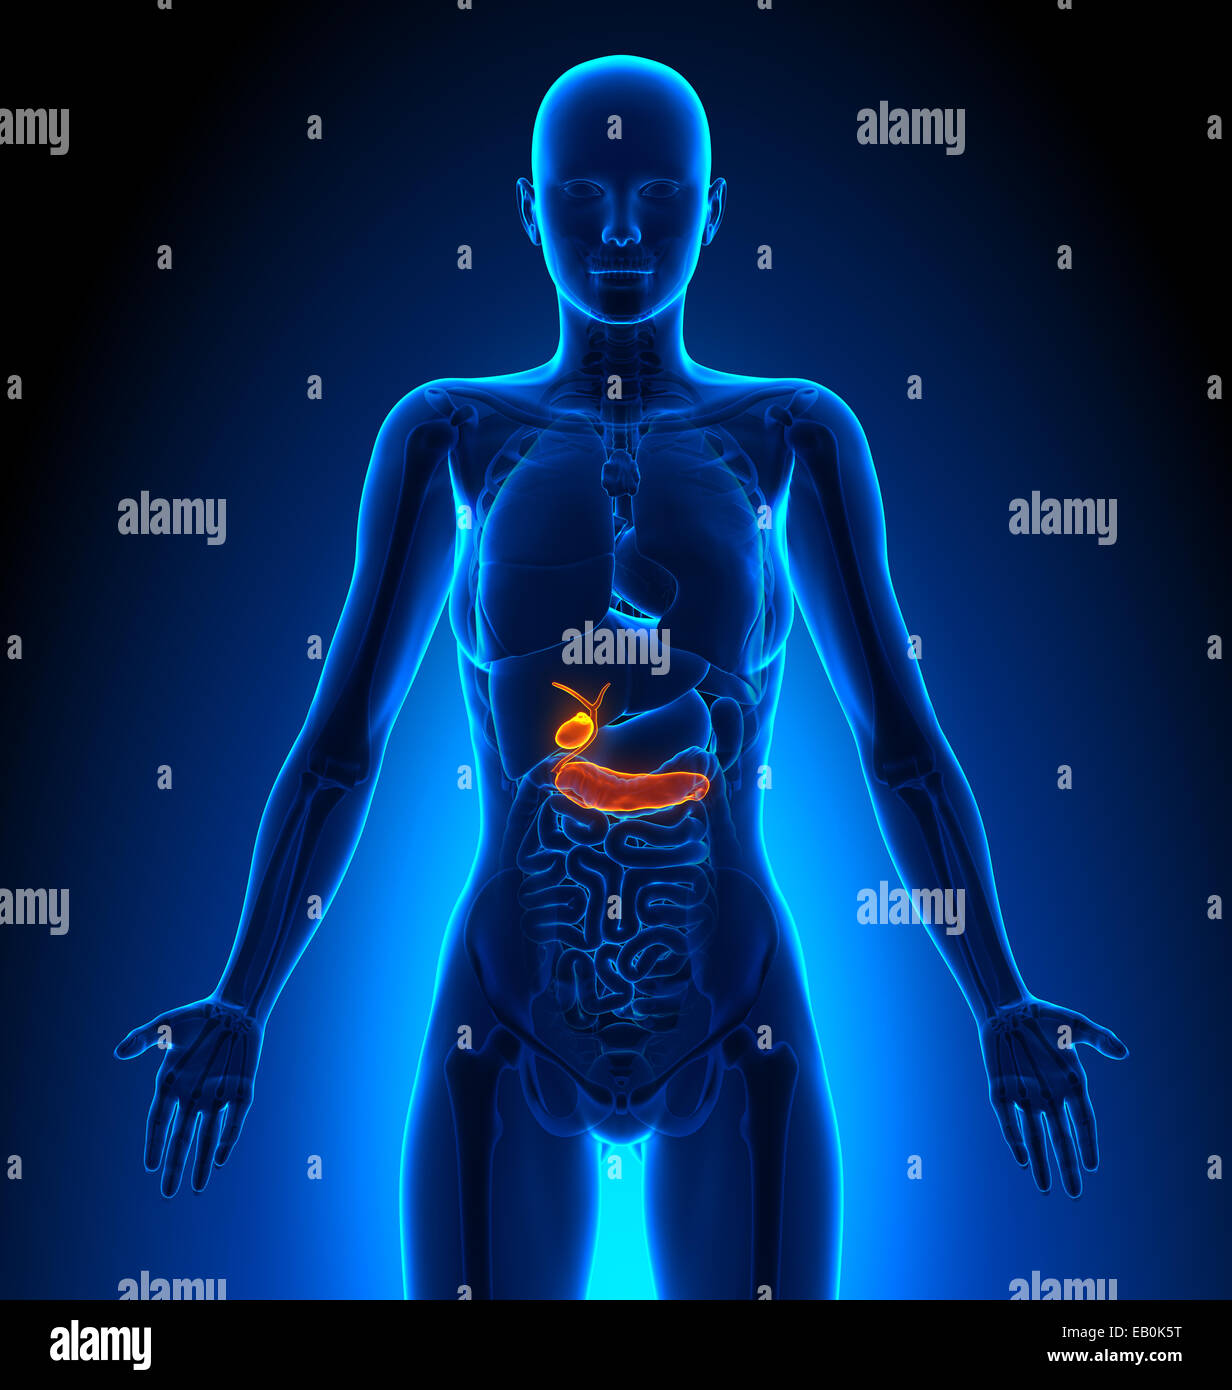 Illustration Female Pancreas Anatomy Stock Photos Illustration